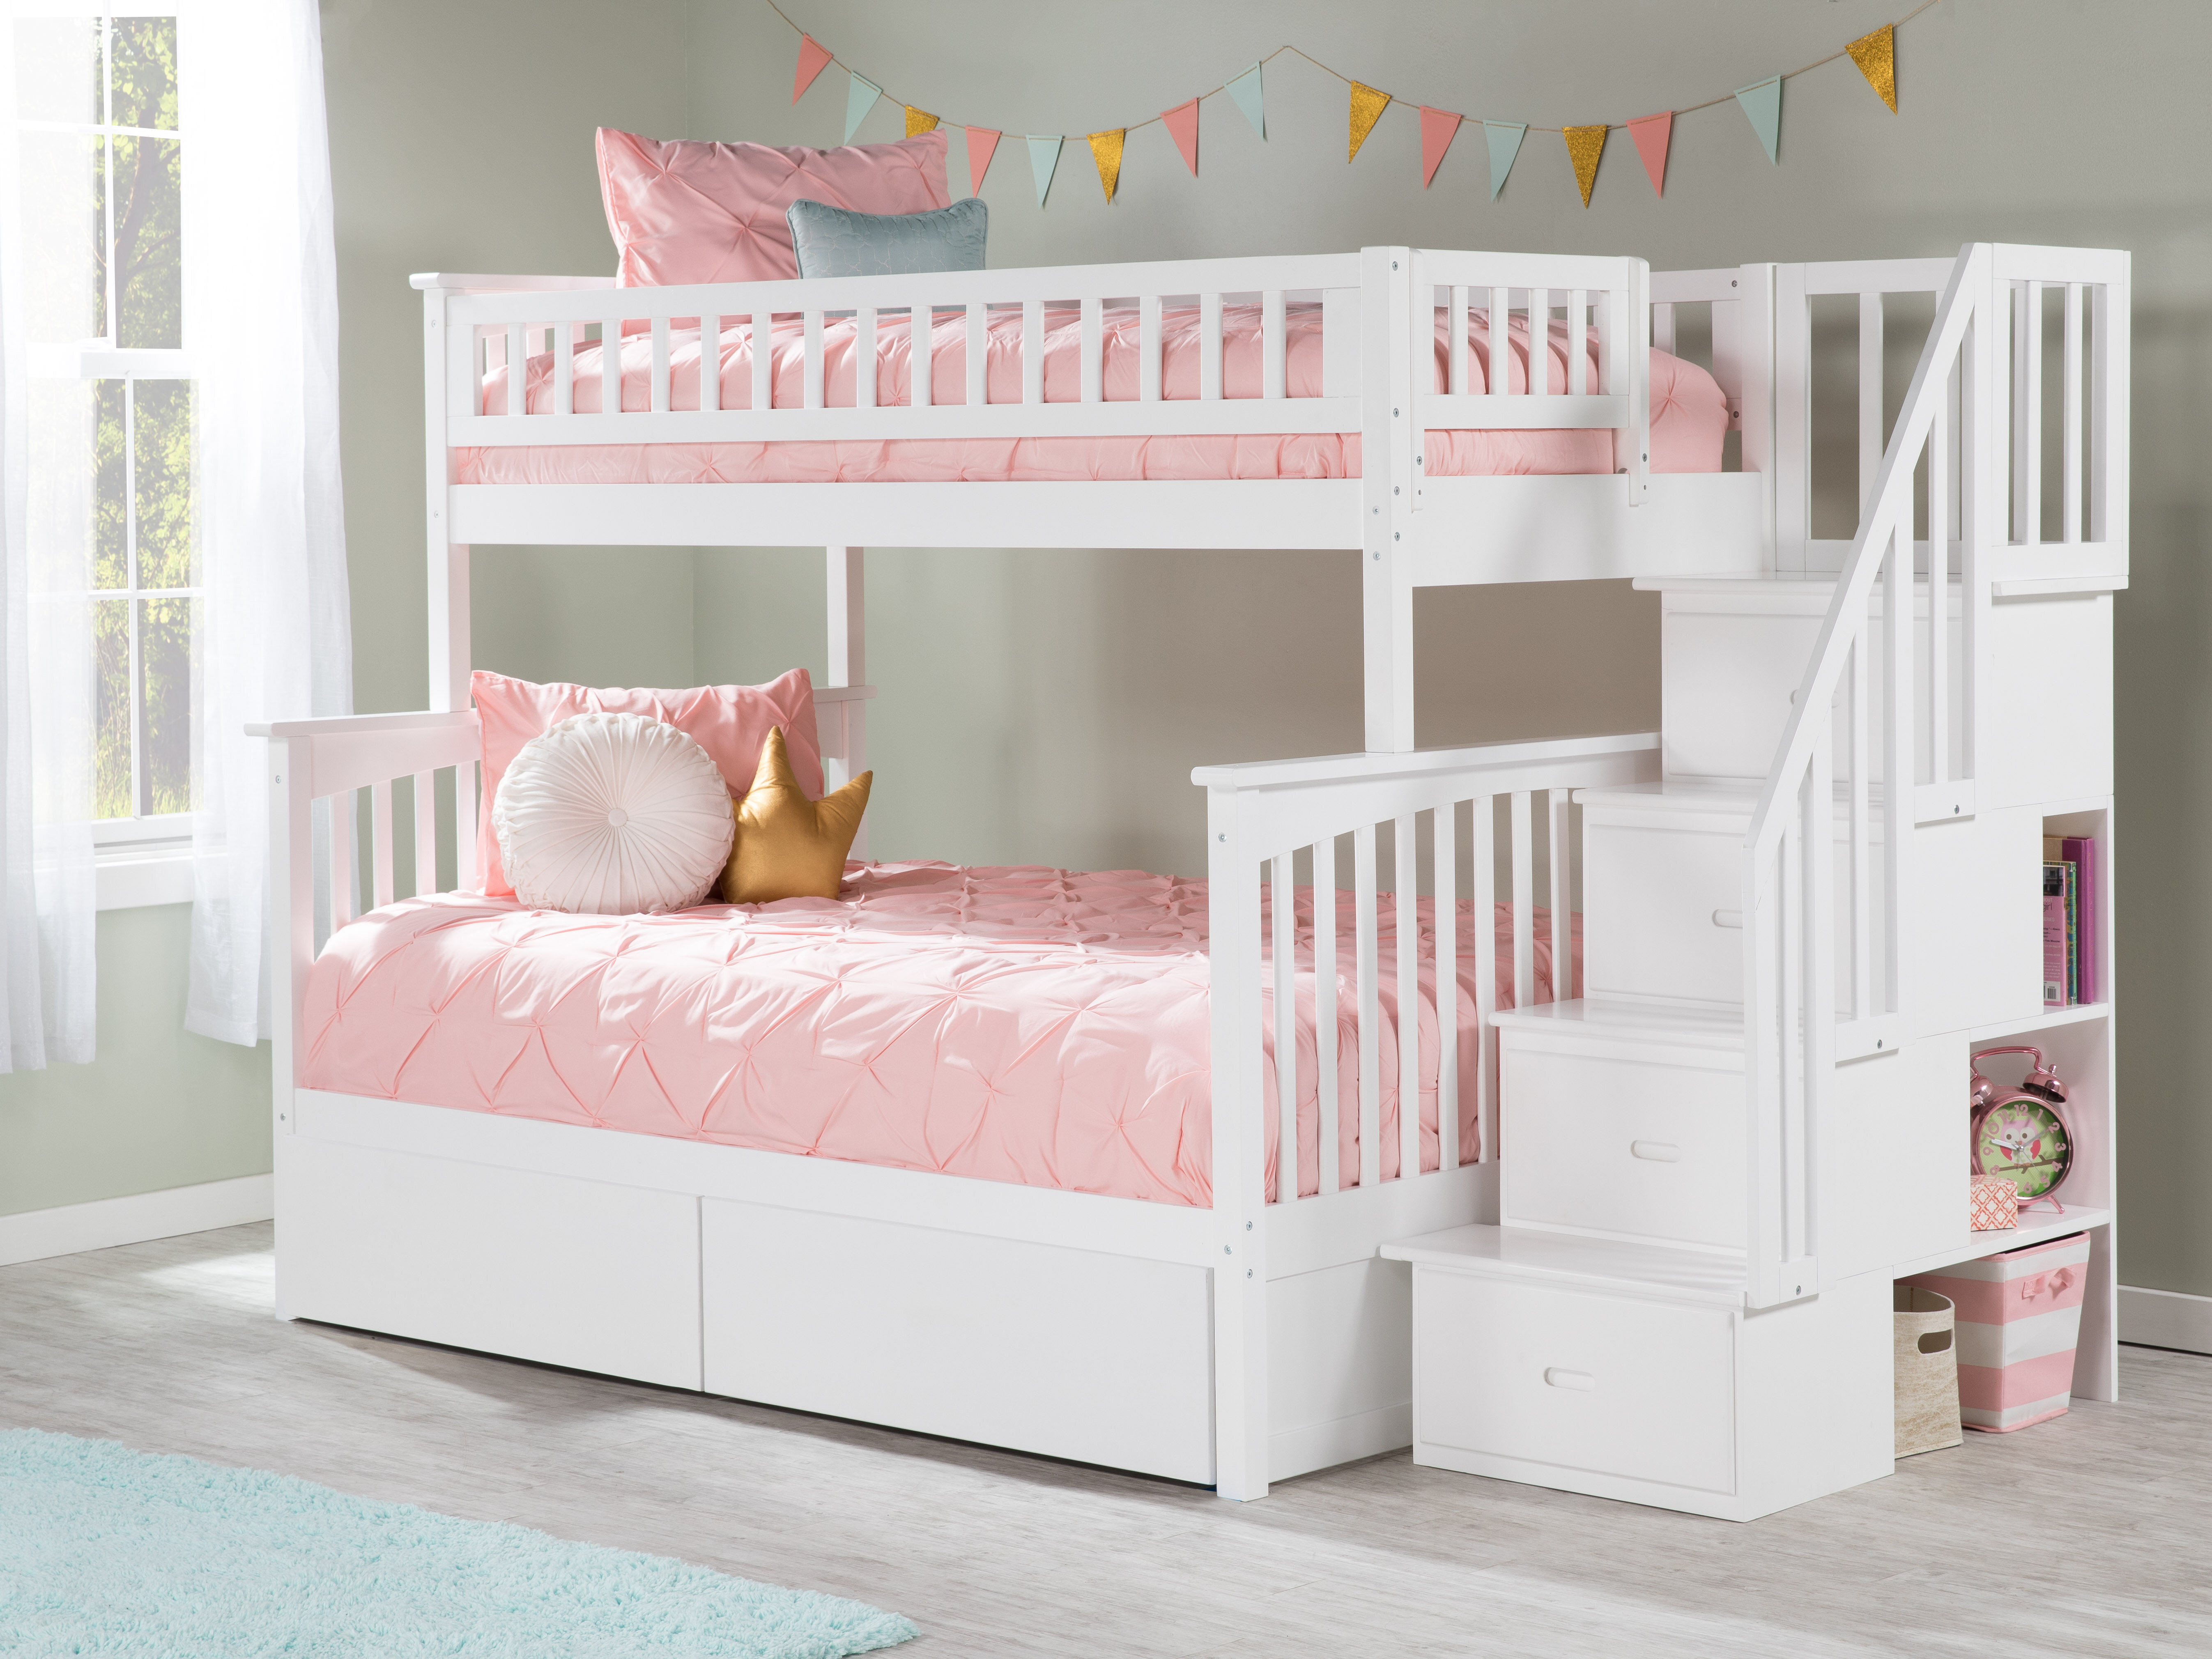 Picture of: Harriet Bee Abel Staircase Twin Over Full Bunk Bed With Drawers Reviews